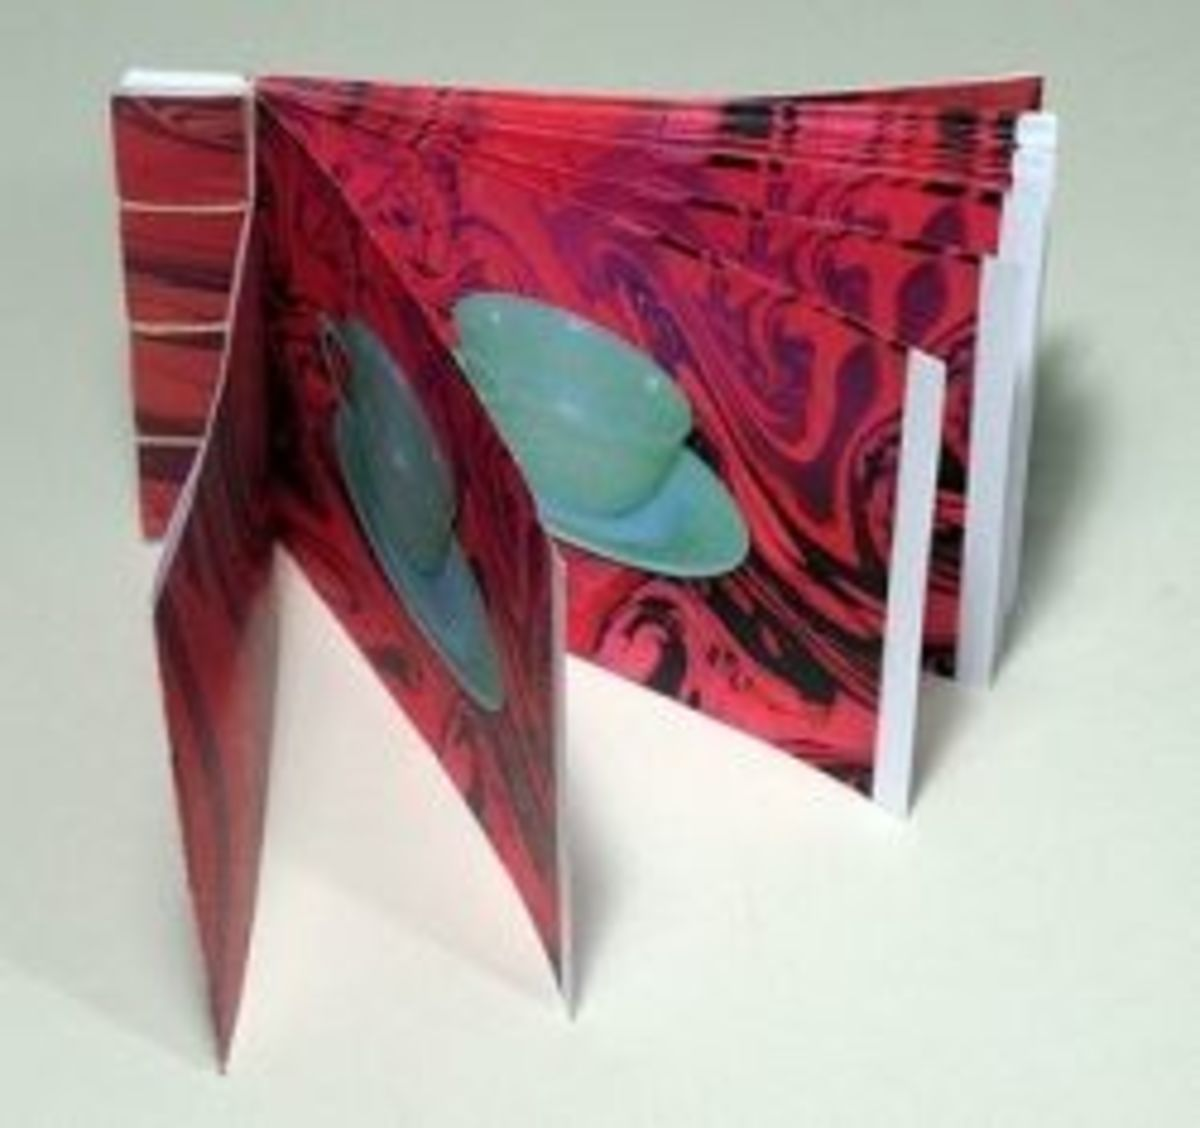 Flip Books for Fun and Learning